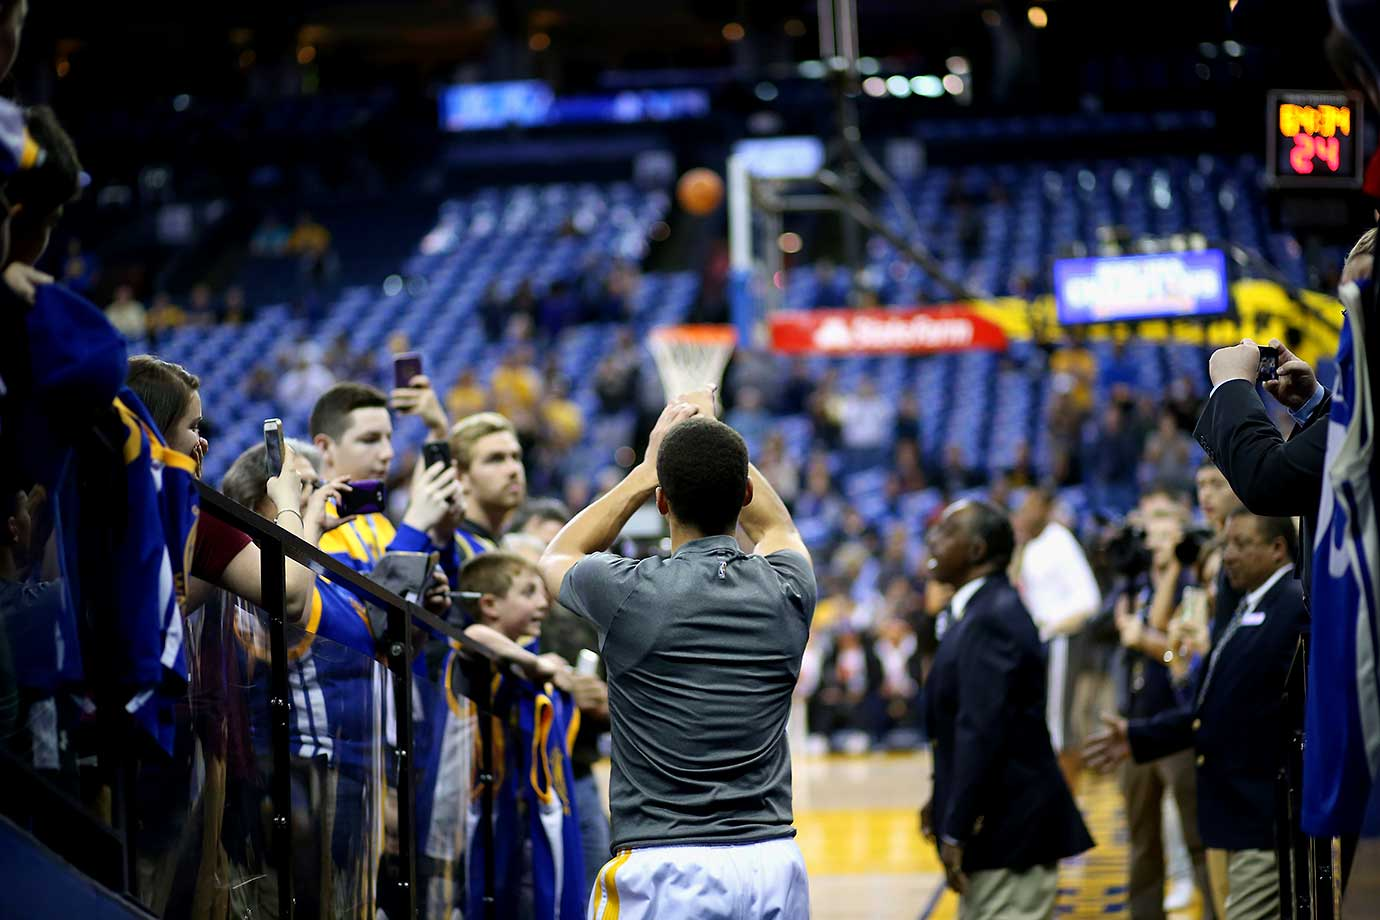 Fans watch Stephen Curry shoot his ceremonial shot from the hallway before their game against the Dallas Mavericks.